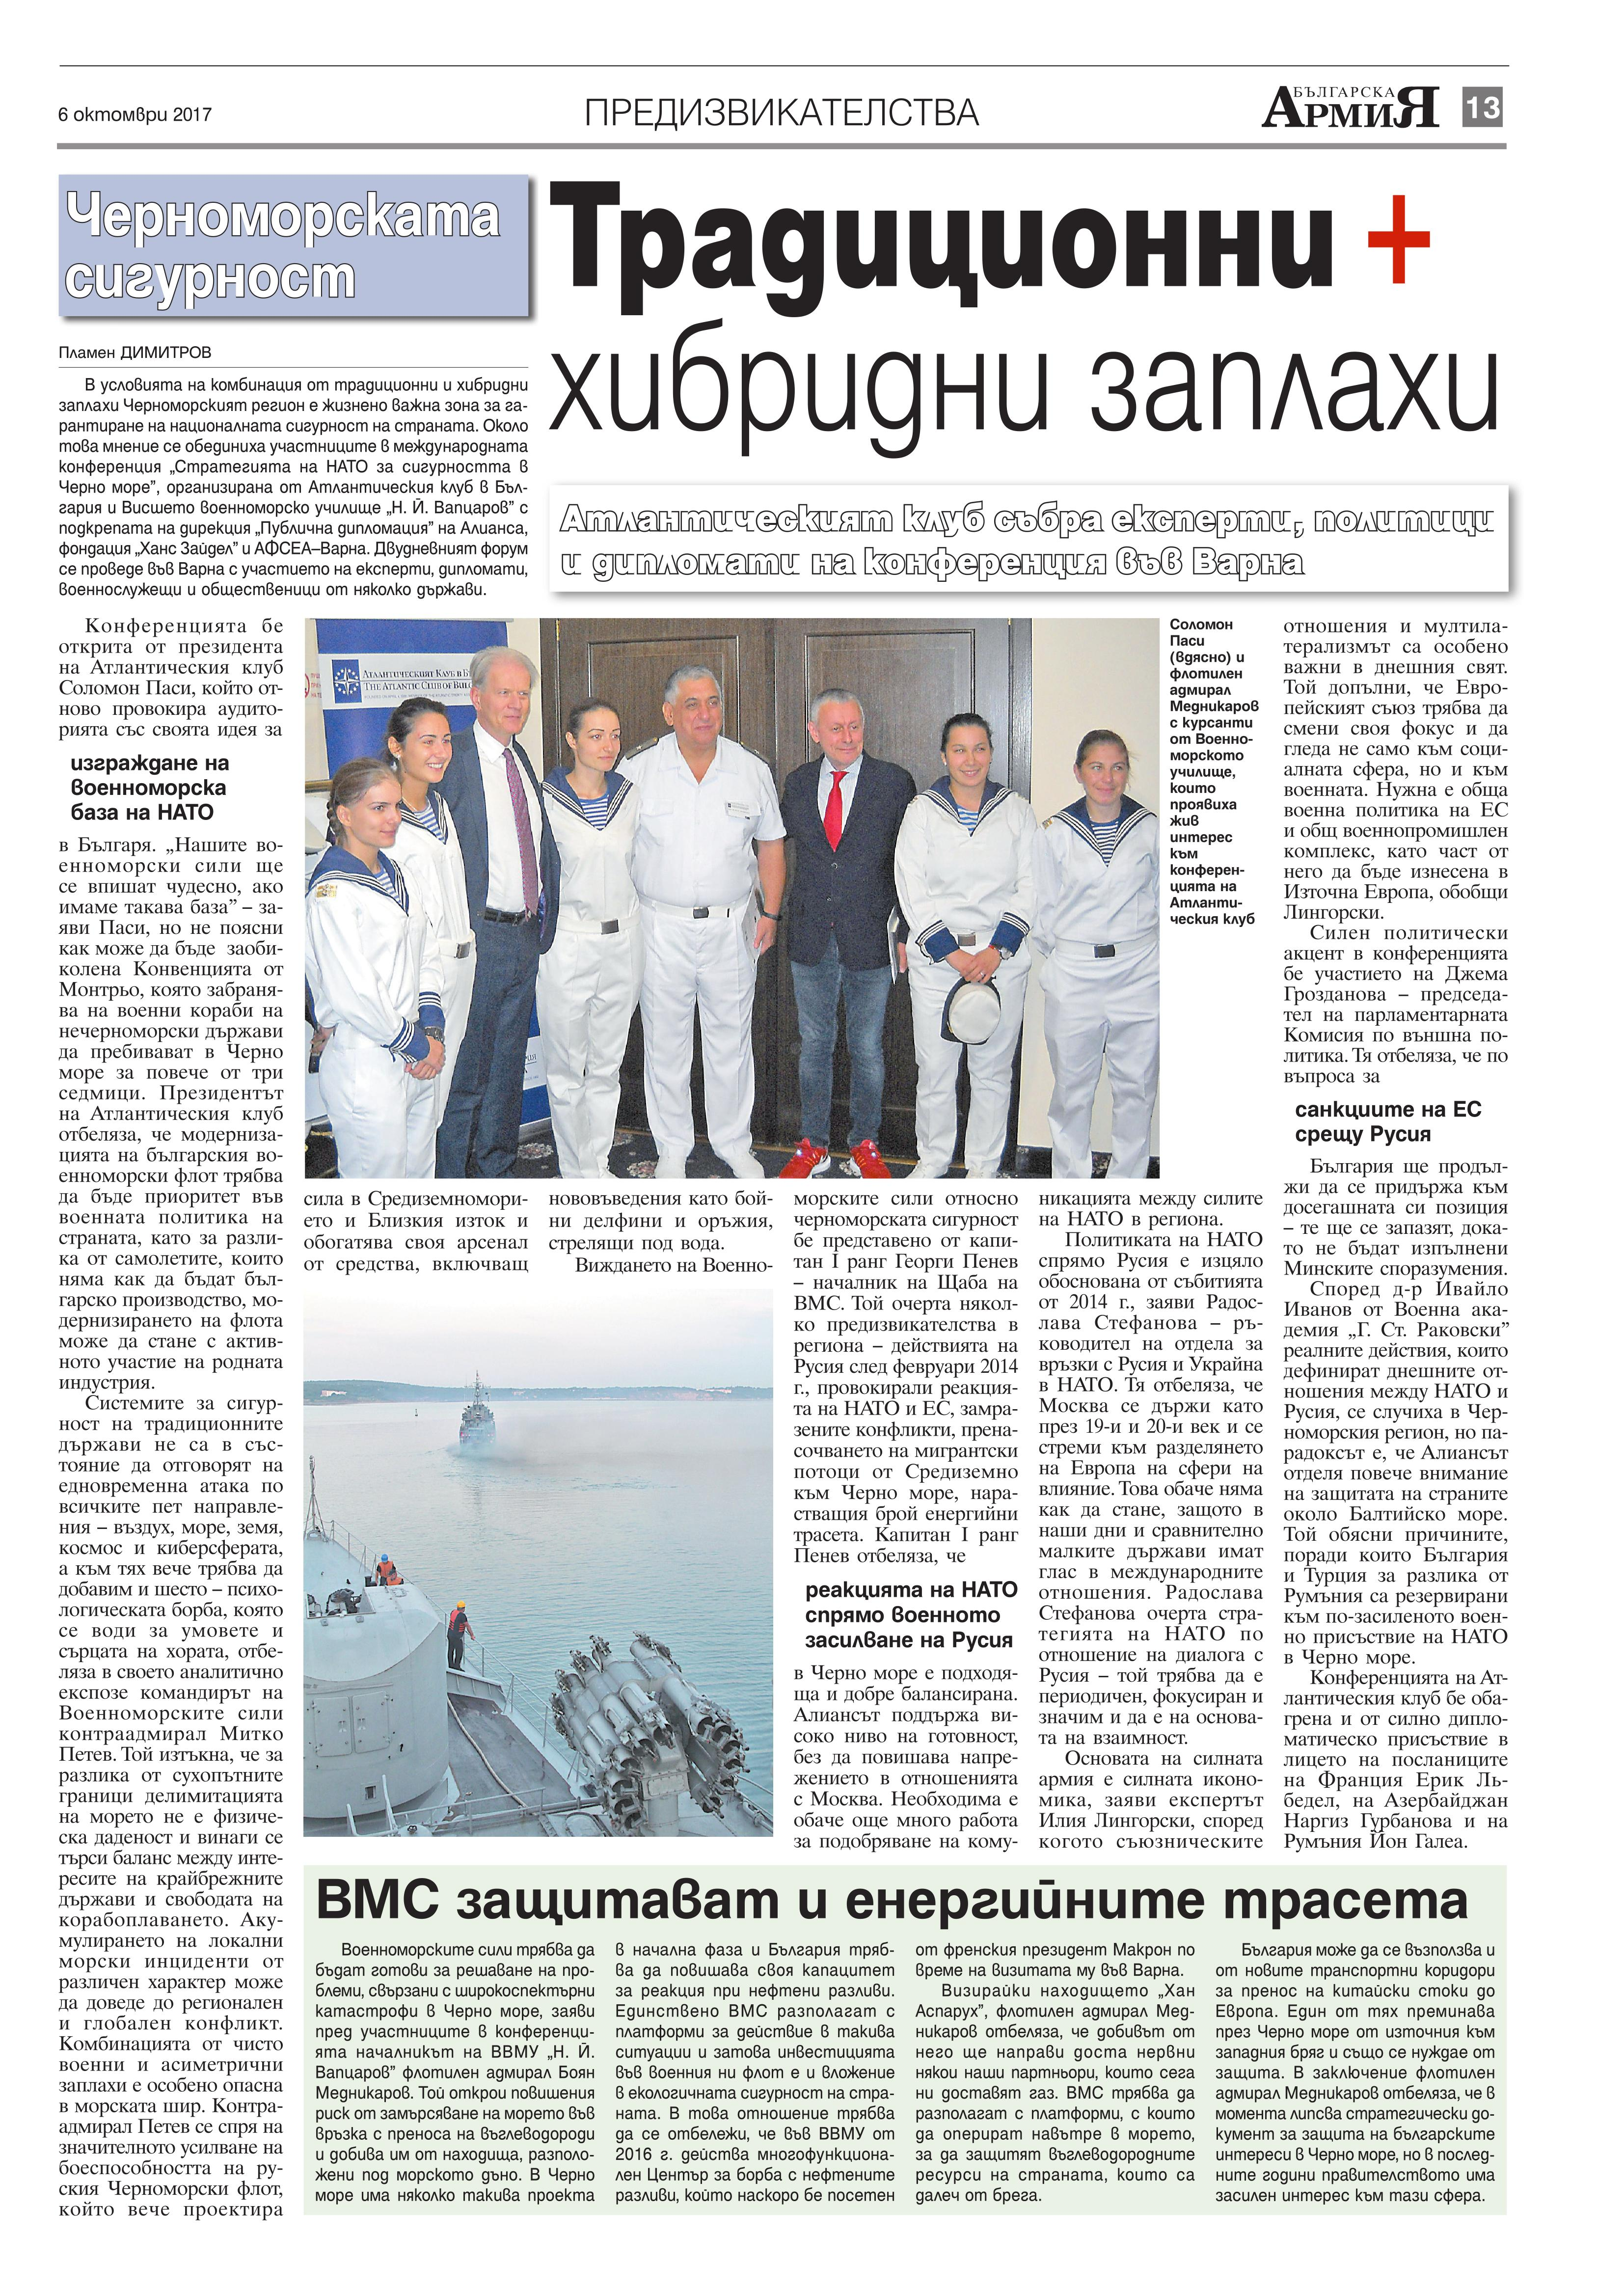 http://armymedia.bg/wp-content/uploads/2015/06/13.page1_-33.jpg